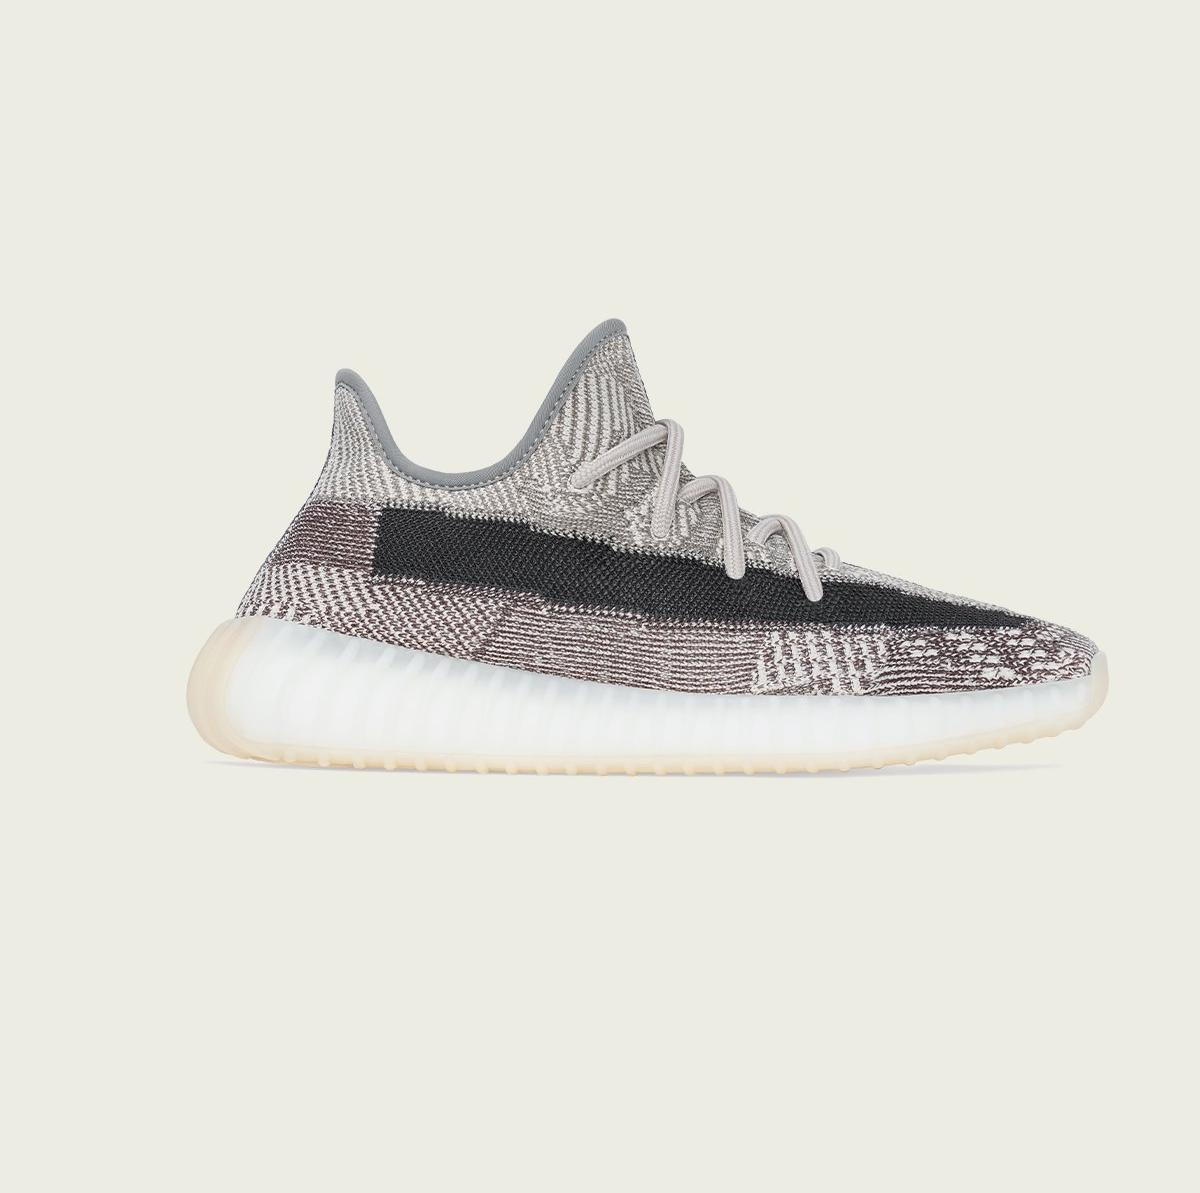 """adidas Yeezy Boost 350 V2 """"Zyon"""" Men's and Kids' Shoes"""